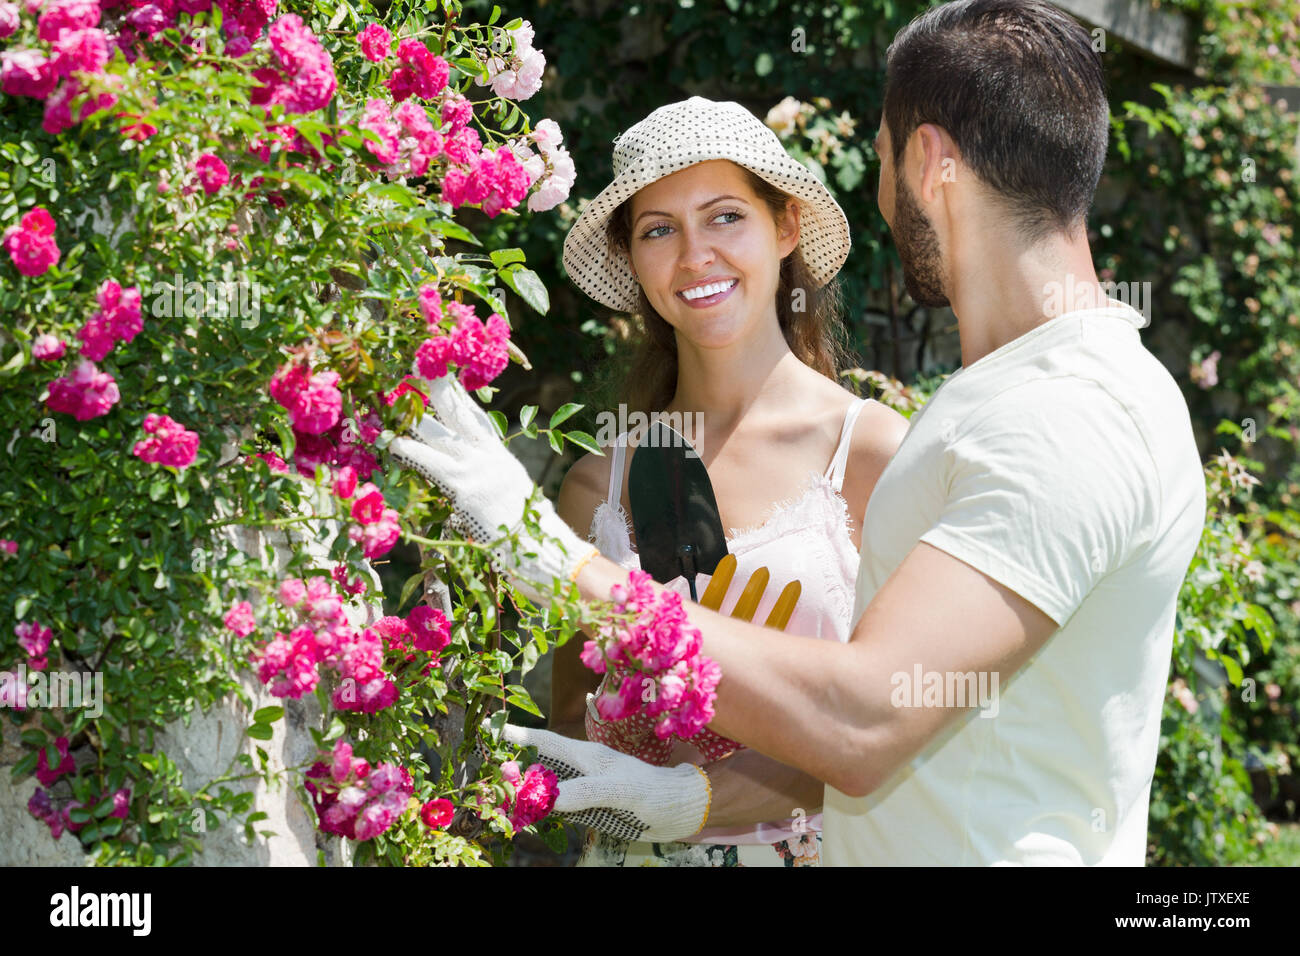 Happy family in garden flowers with horticultural sundry for planting Stock Photo